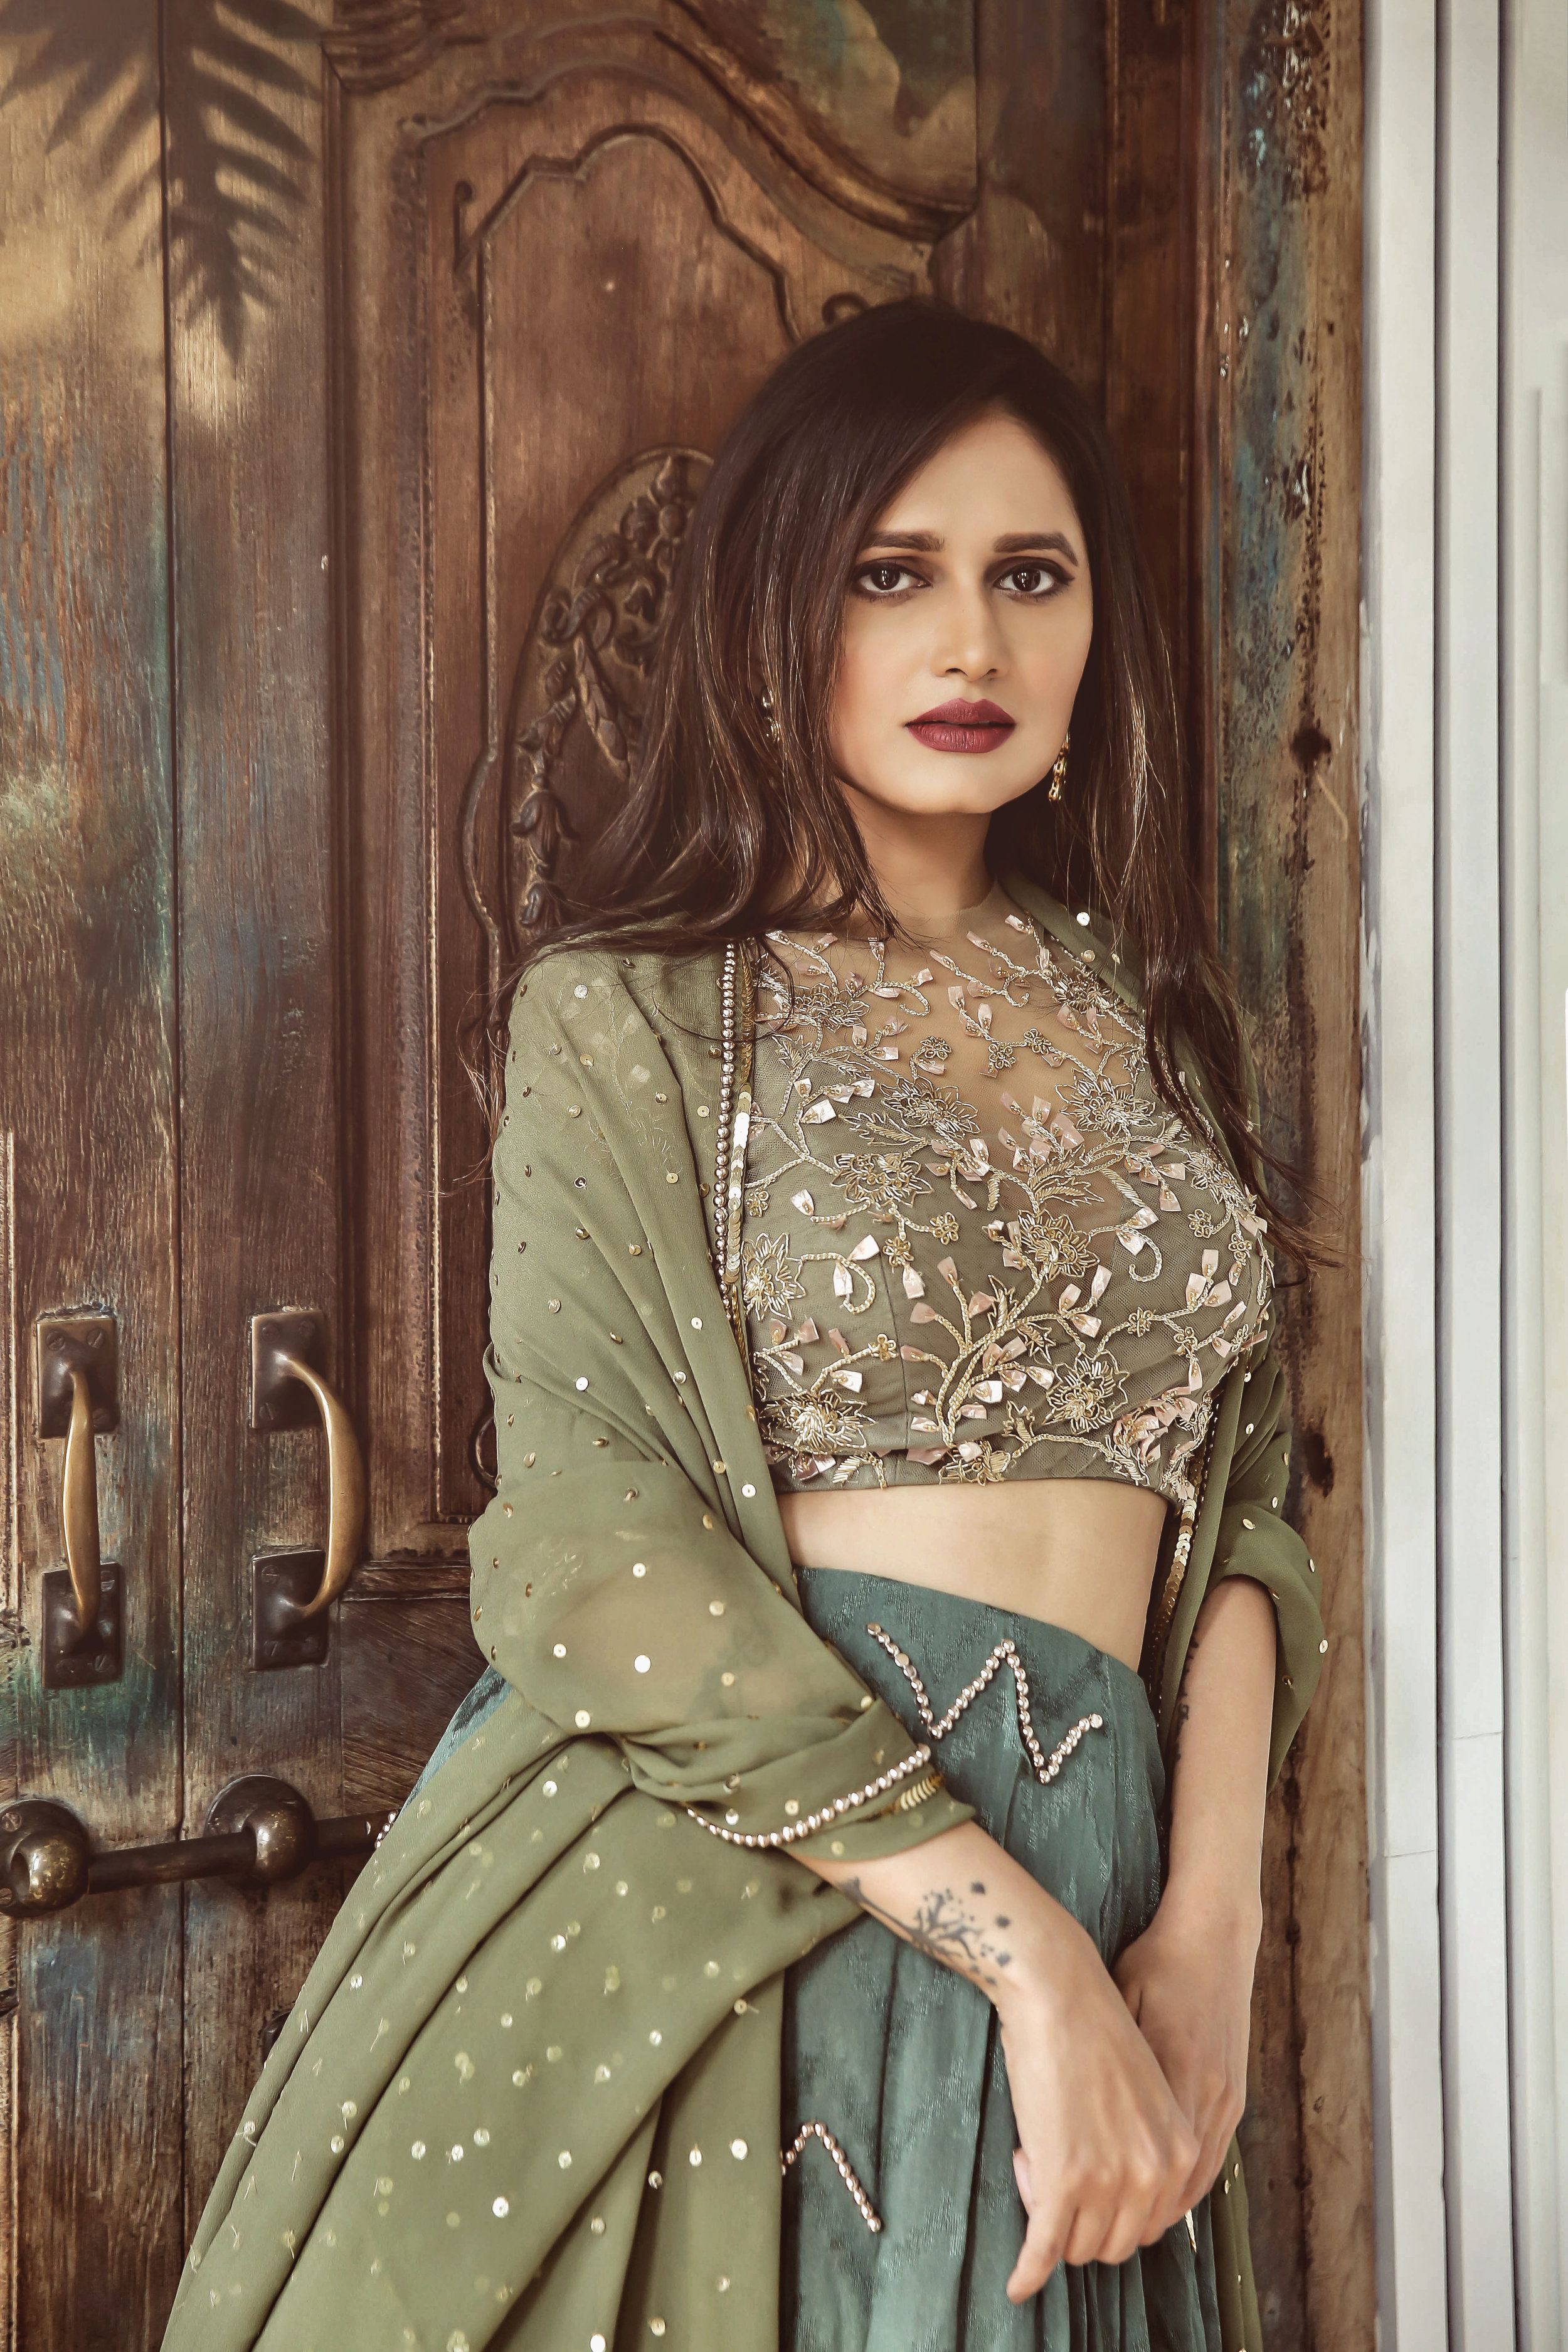 The-Chic-Armoire-by-Nidhi-Kunder-Ohaila-Khan-5